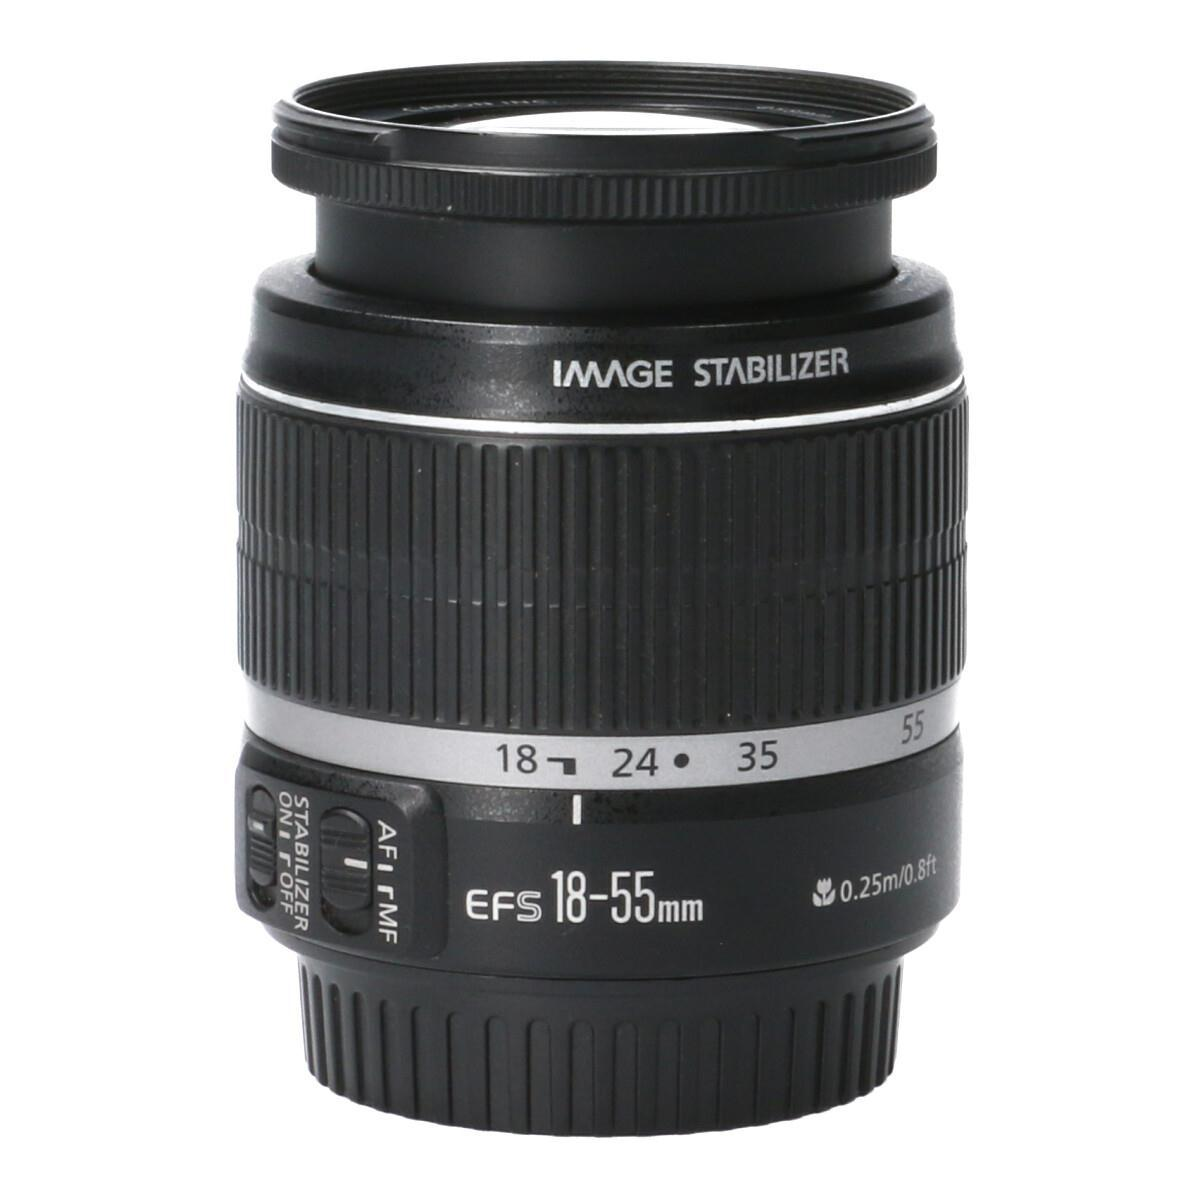 CANON EF-S18-55mm F3.5-5.6IS【中古】